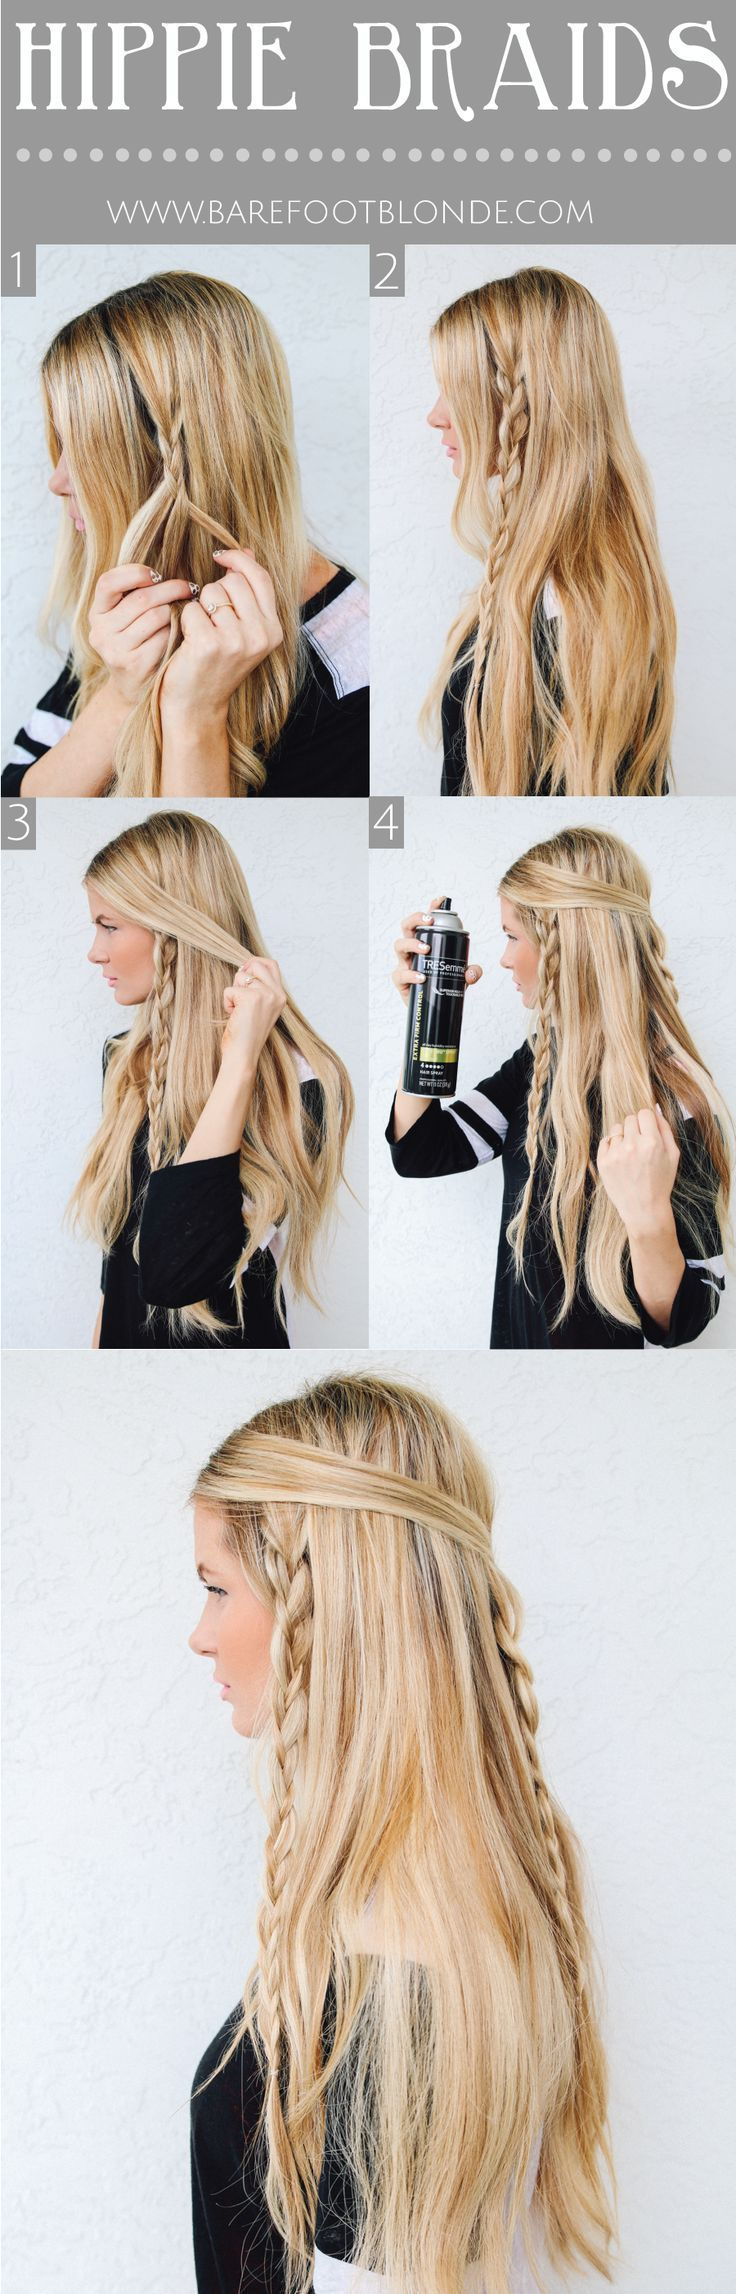 Top messy braided hairstyle tutorials to be stylish this fall